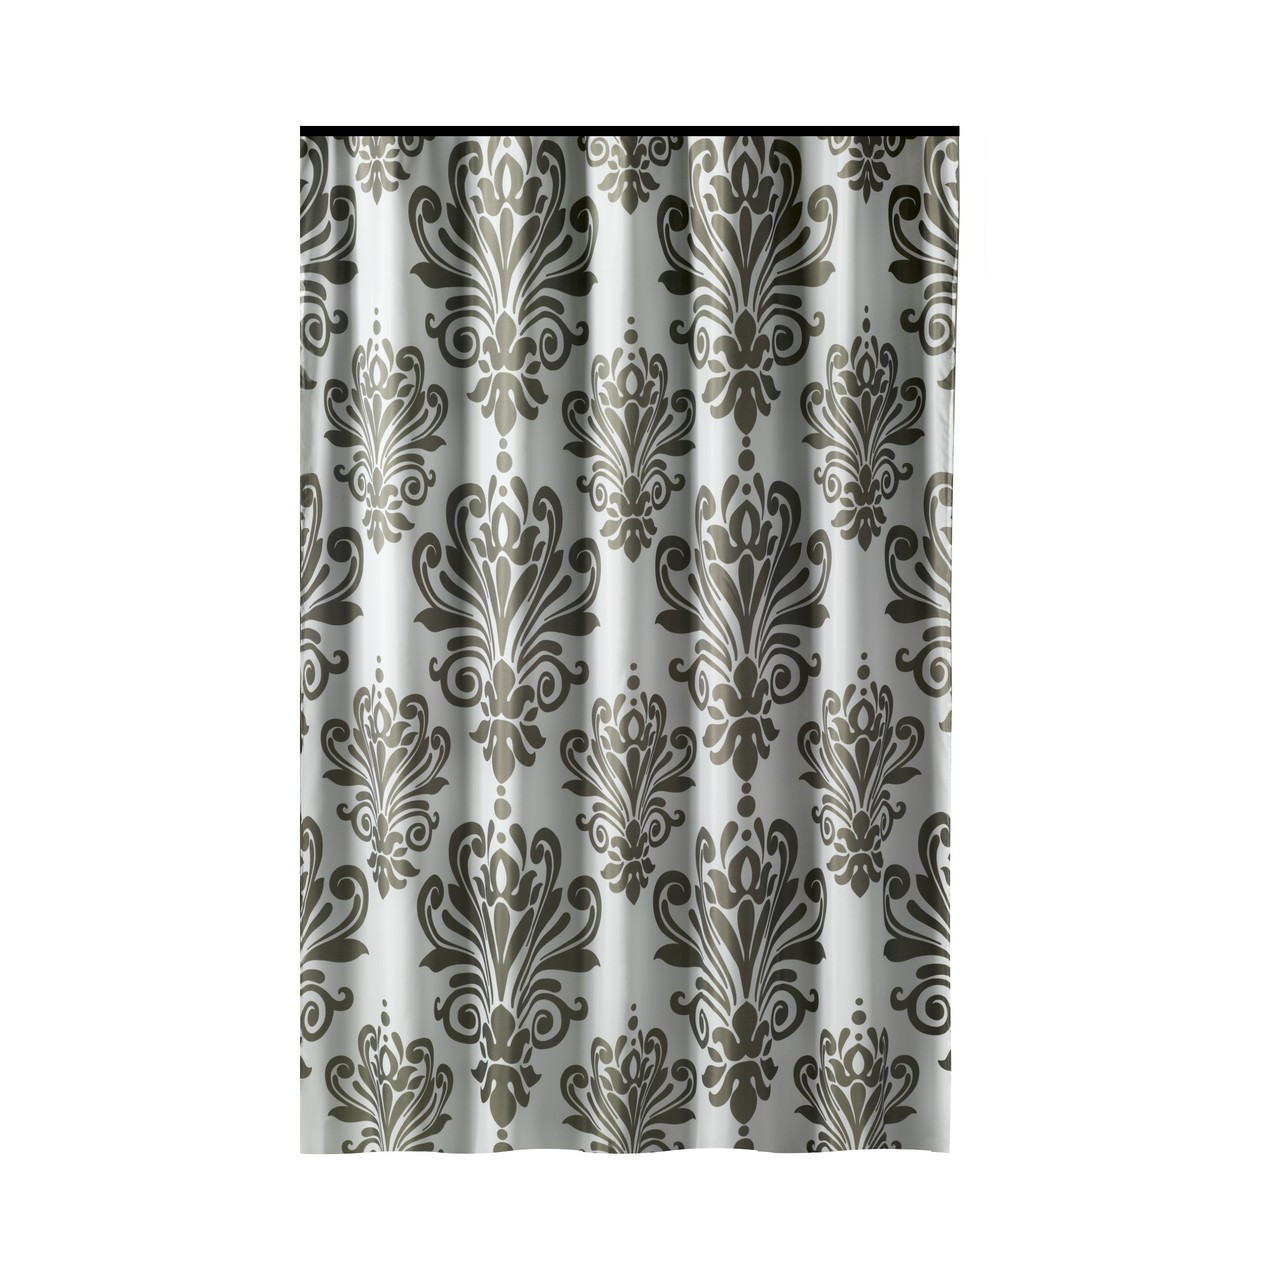 Long Shower Curtain Extra Long Shower Curtain 72 X 78 Inch Gamma Gray And White Baroque Fabric